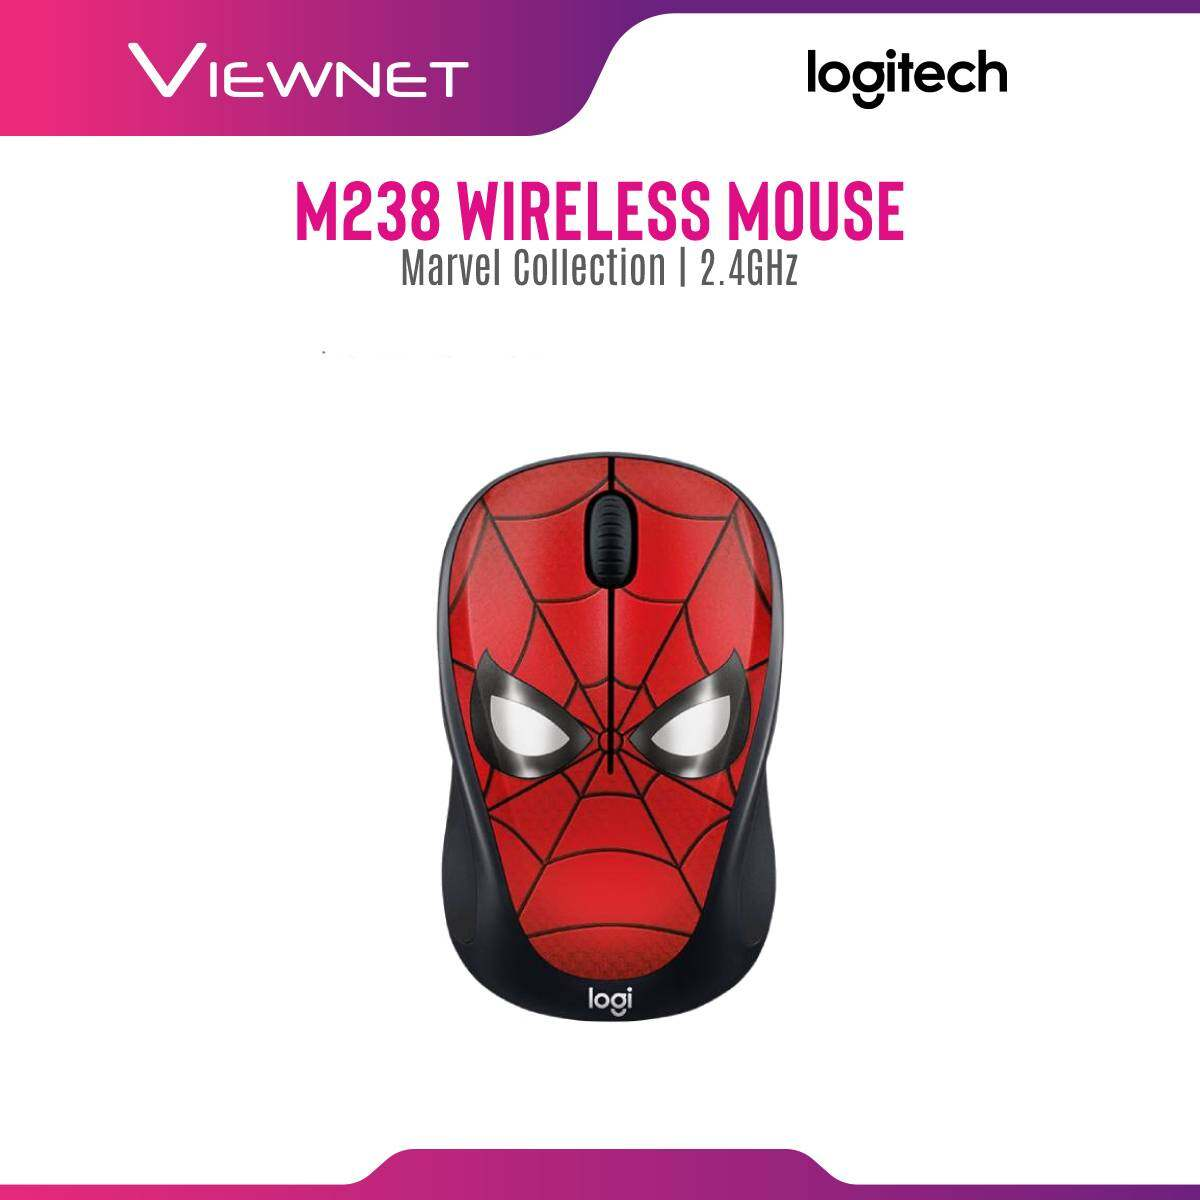 LOGITECH WIRELESS MOUSE M238 MARVEL COLLECTION BLACK PANTHER/CAPTAIN AMERICA/CAPTAIN MARVEL/IRONMAN/SPIDERMAN